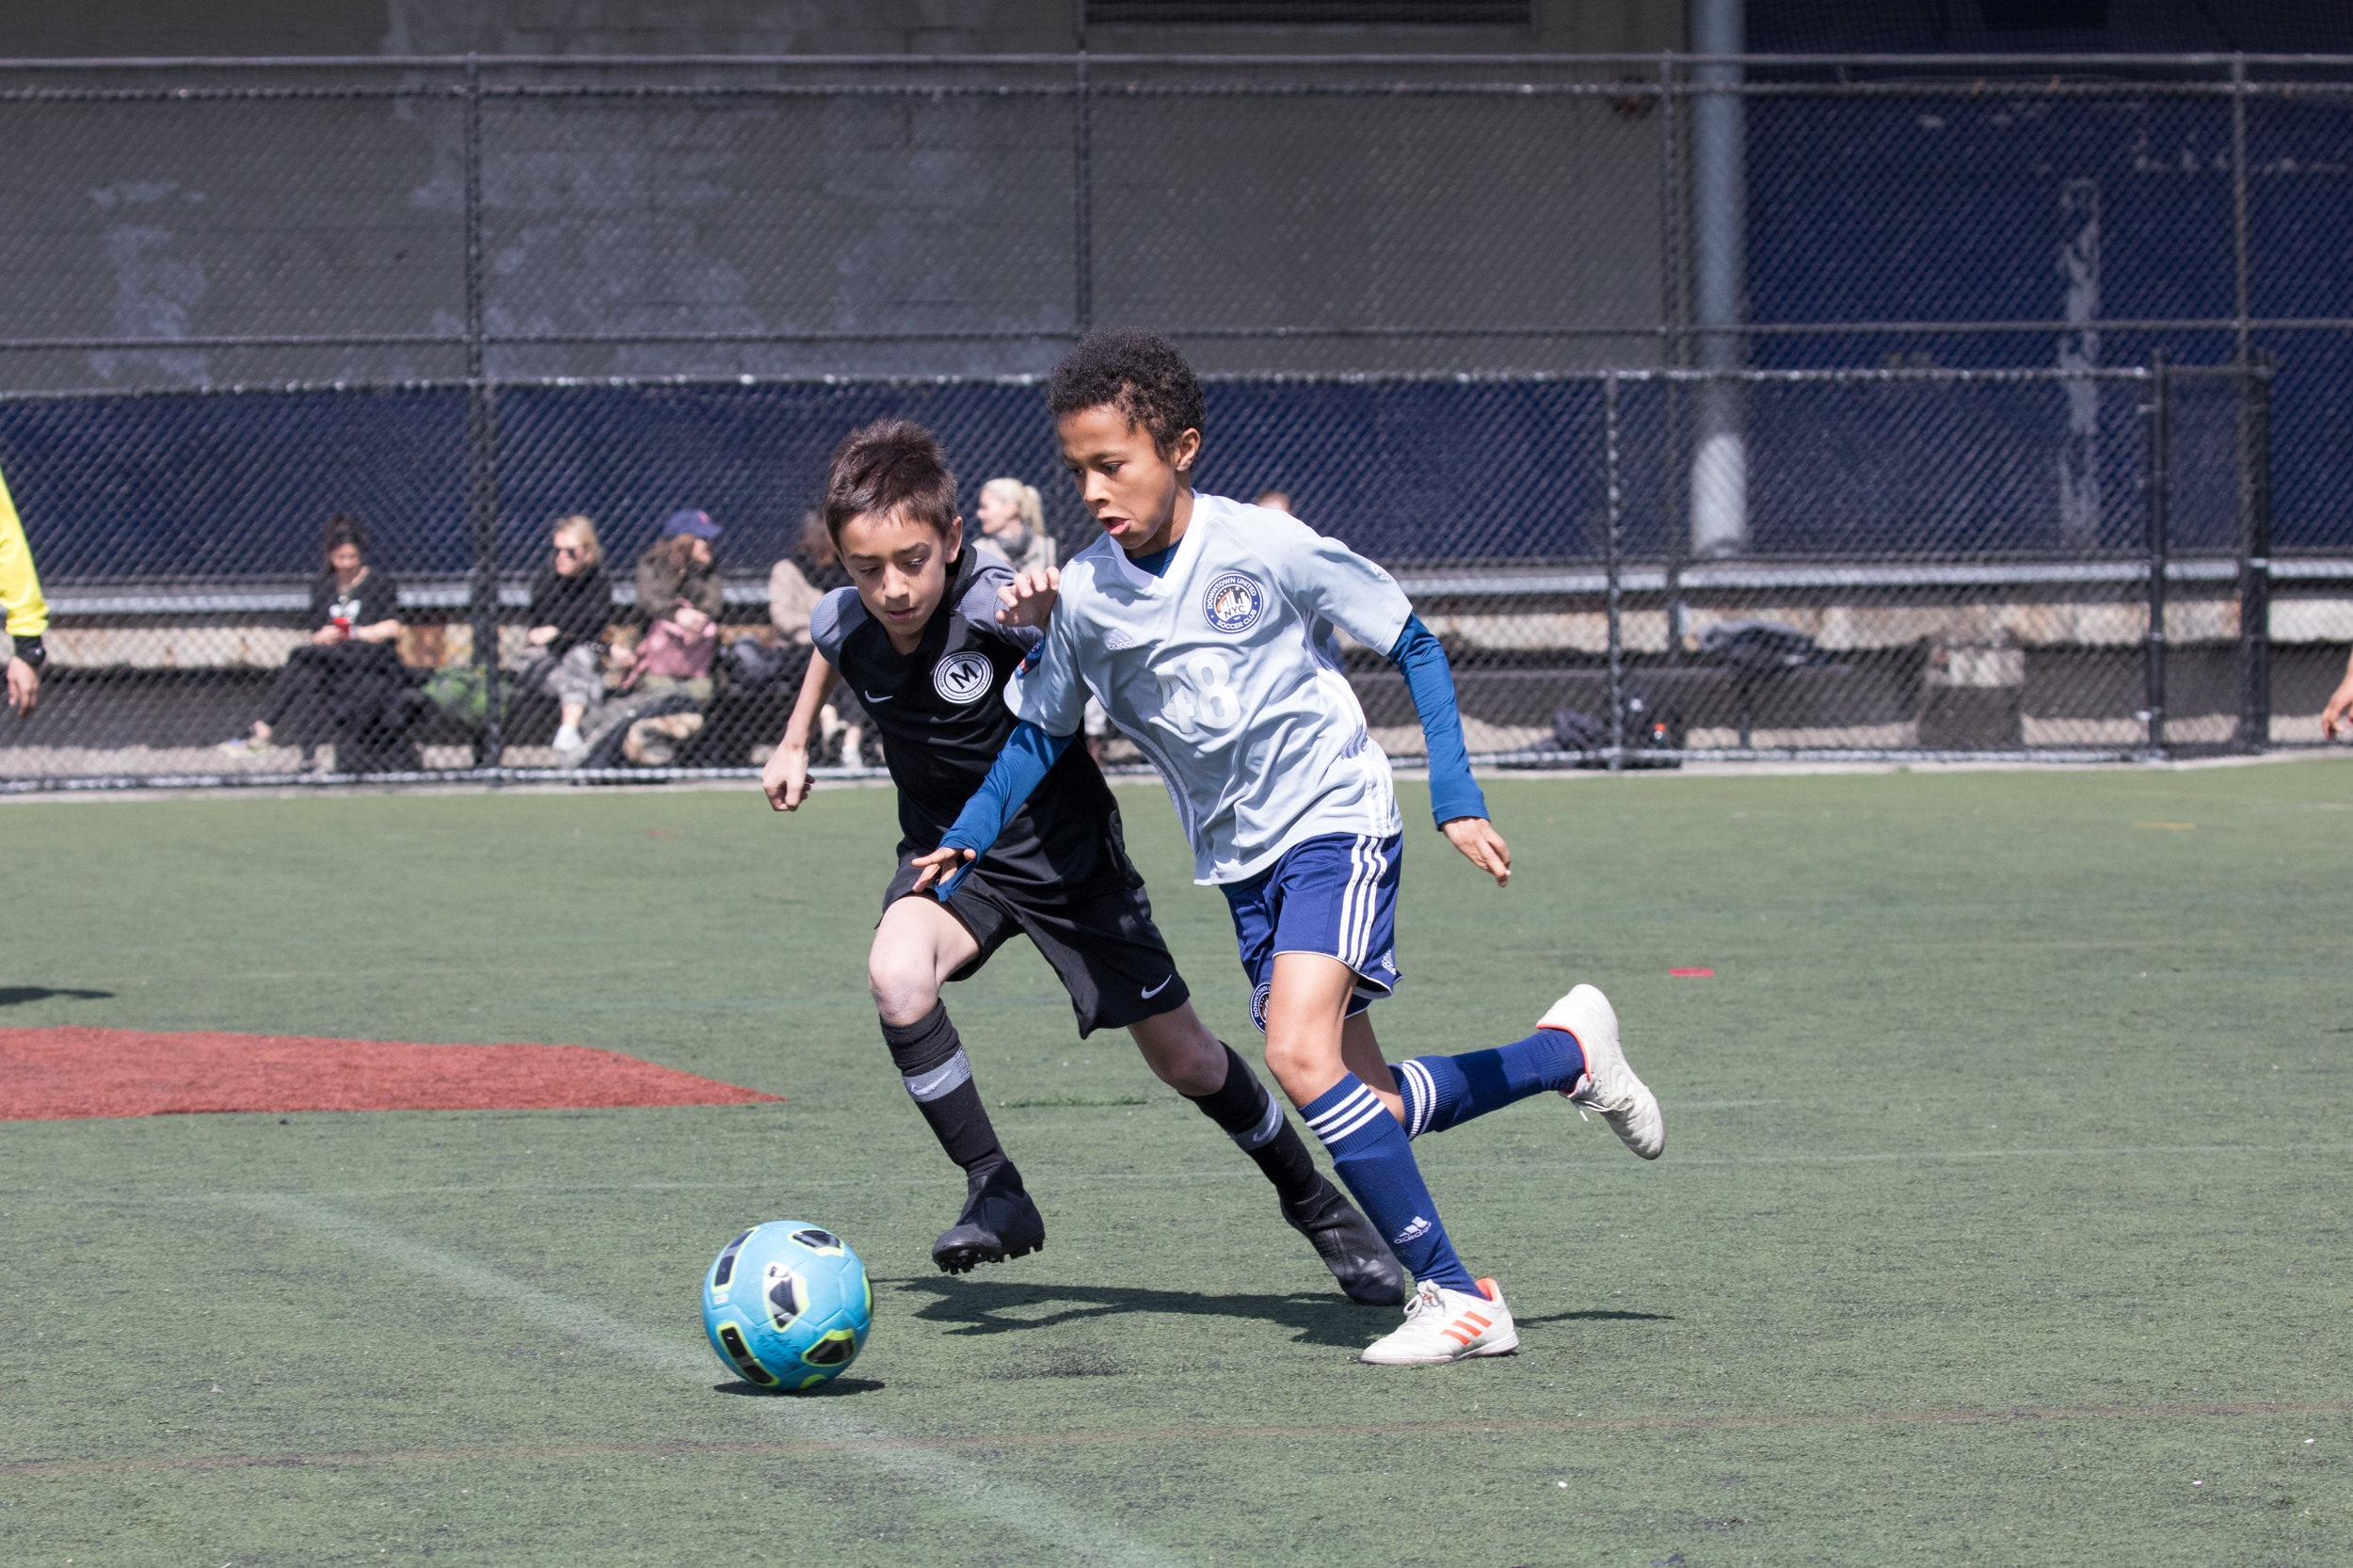 A DUSC Academy player about to pass the ball.